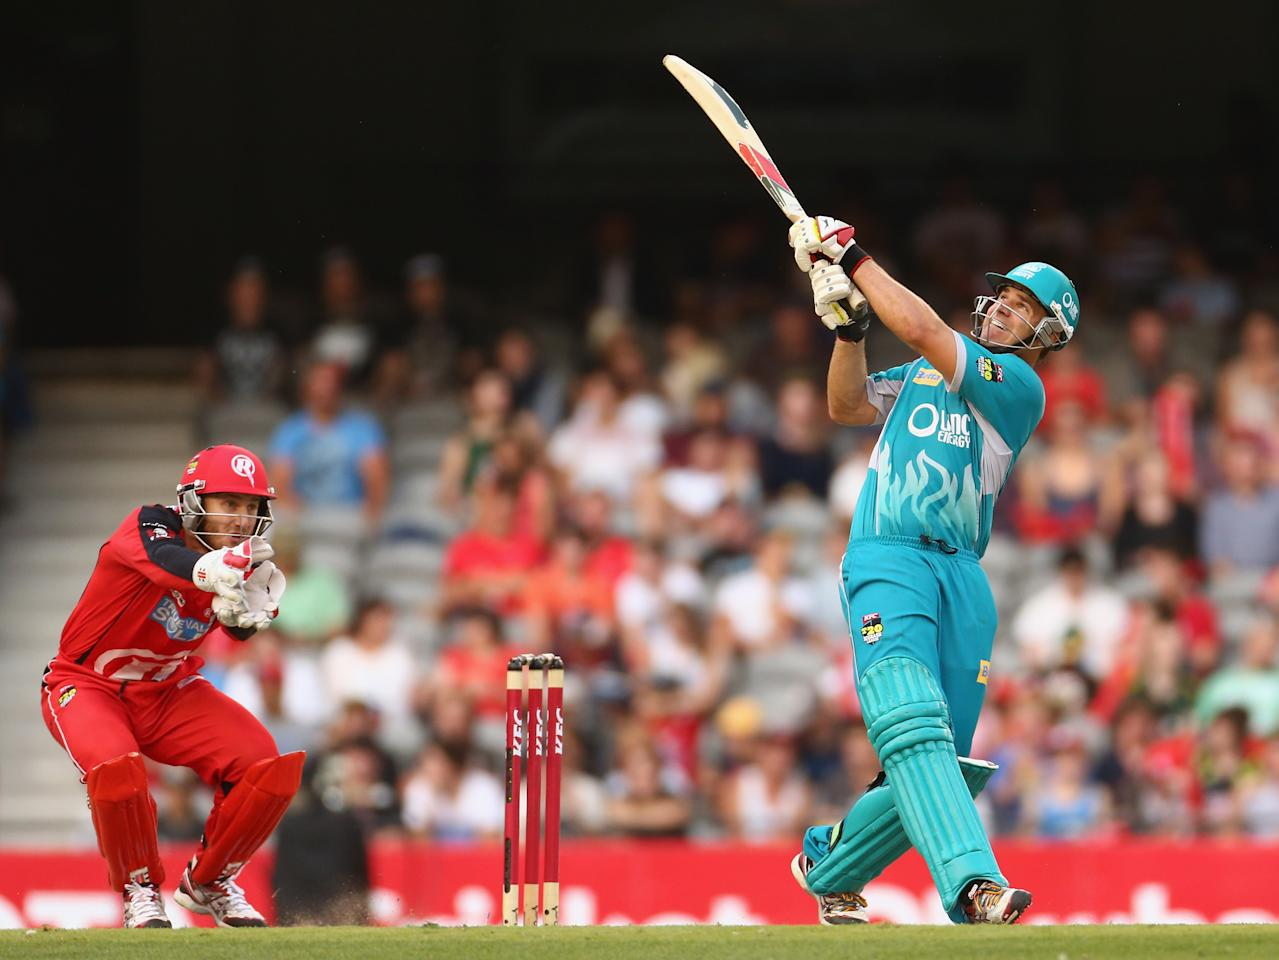 MELBOURNE, AUSTRALIA - JANUARY 15:  Luke Pomersbach of the Heat bats during the Big Bash League Semi-Final match between the Melbourne Renegades and the Brisbane Heat at Etihad Stadium on January 15, 2013 in Melbourne, Australia.  (Photo by Robert Cianflone/Getty Images)